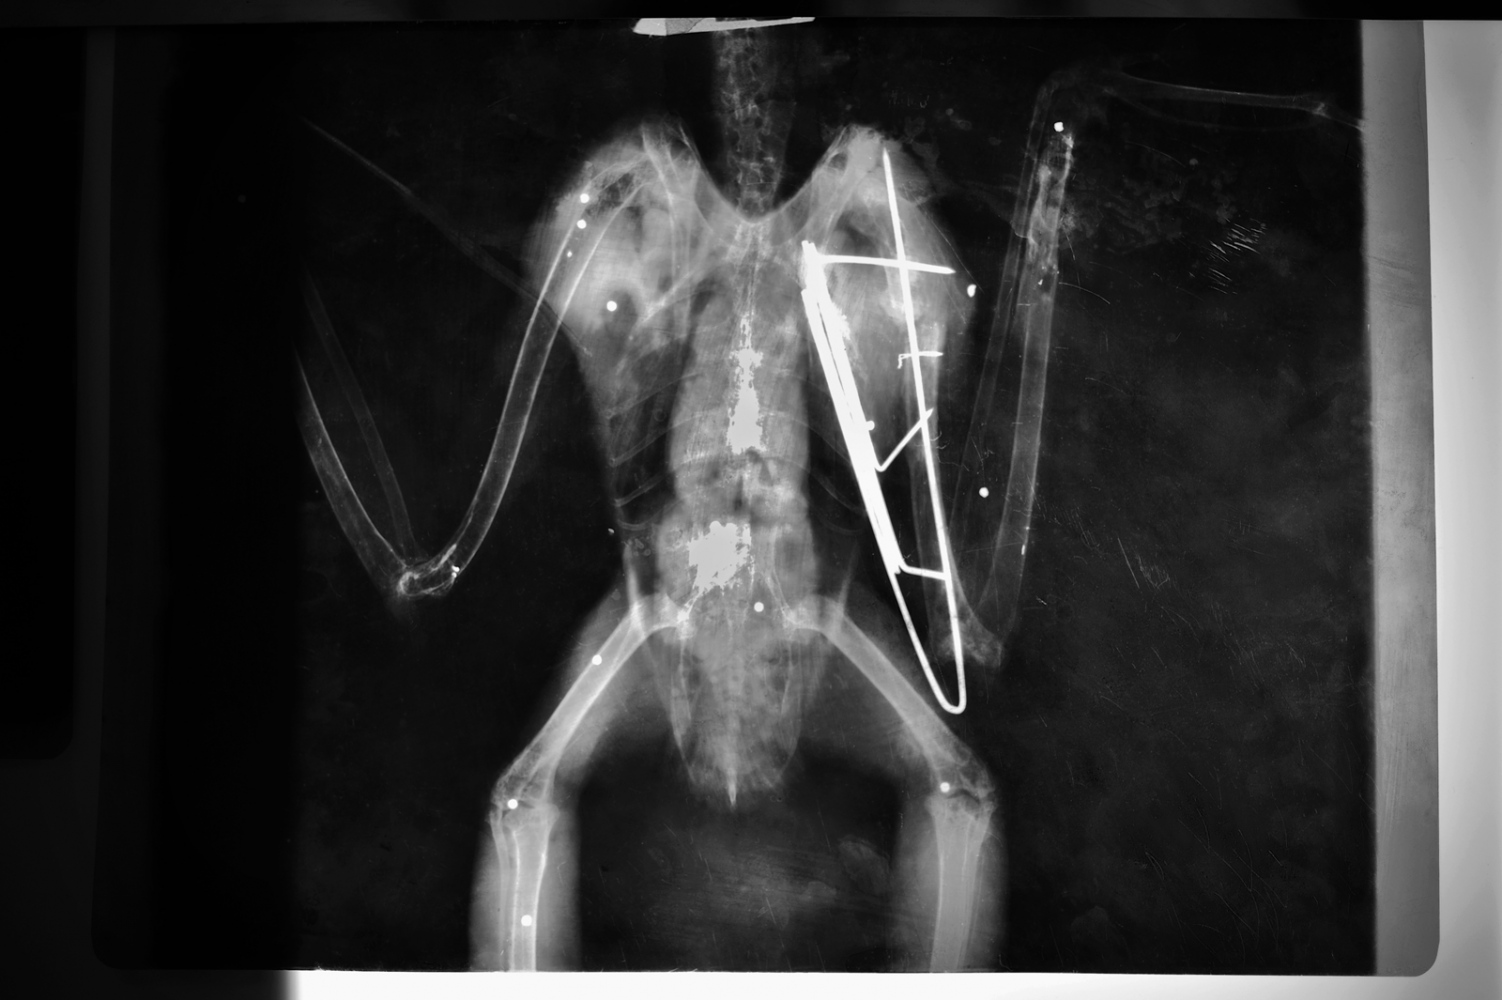 There are some unoficial projects to attend wild fauna population to recover and stabilize species. X-Ray to a royal owl where could see remnants of shotgun pellet, one of the mortality factors of birds.